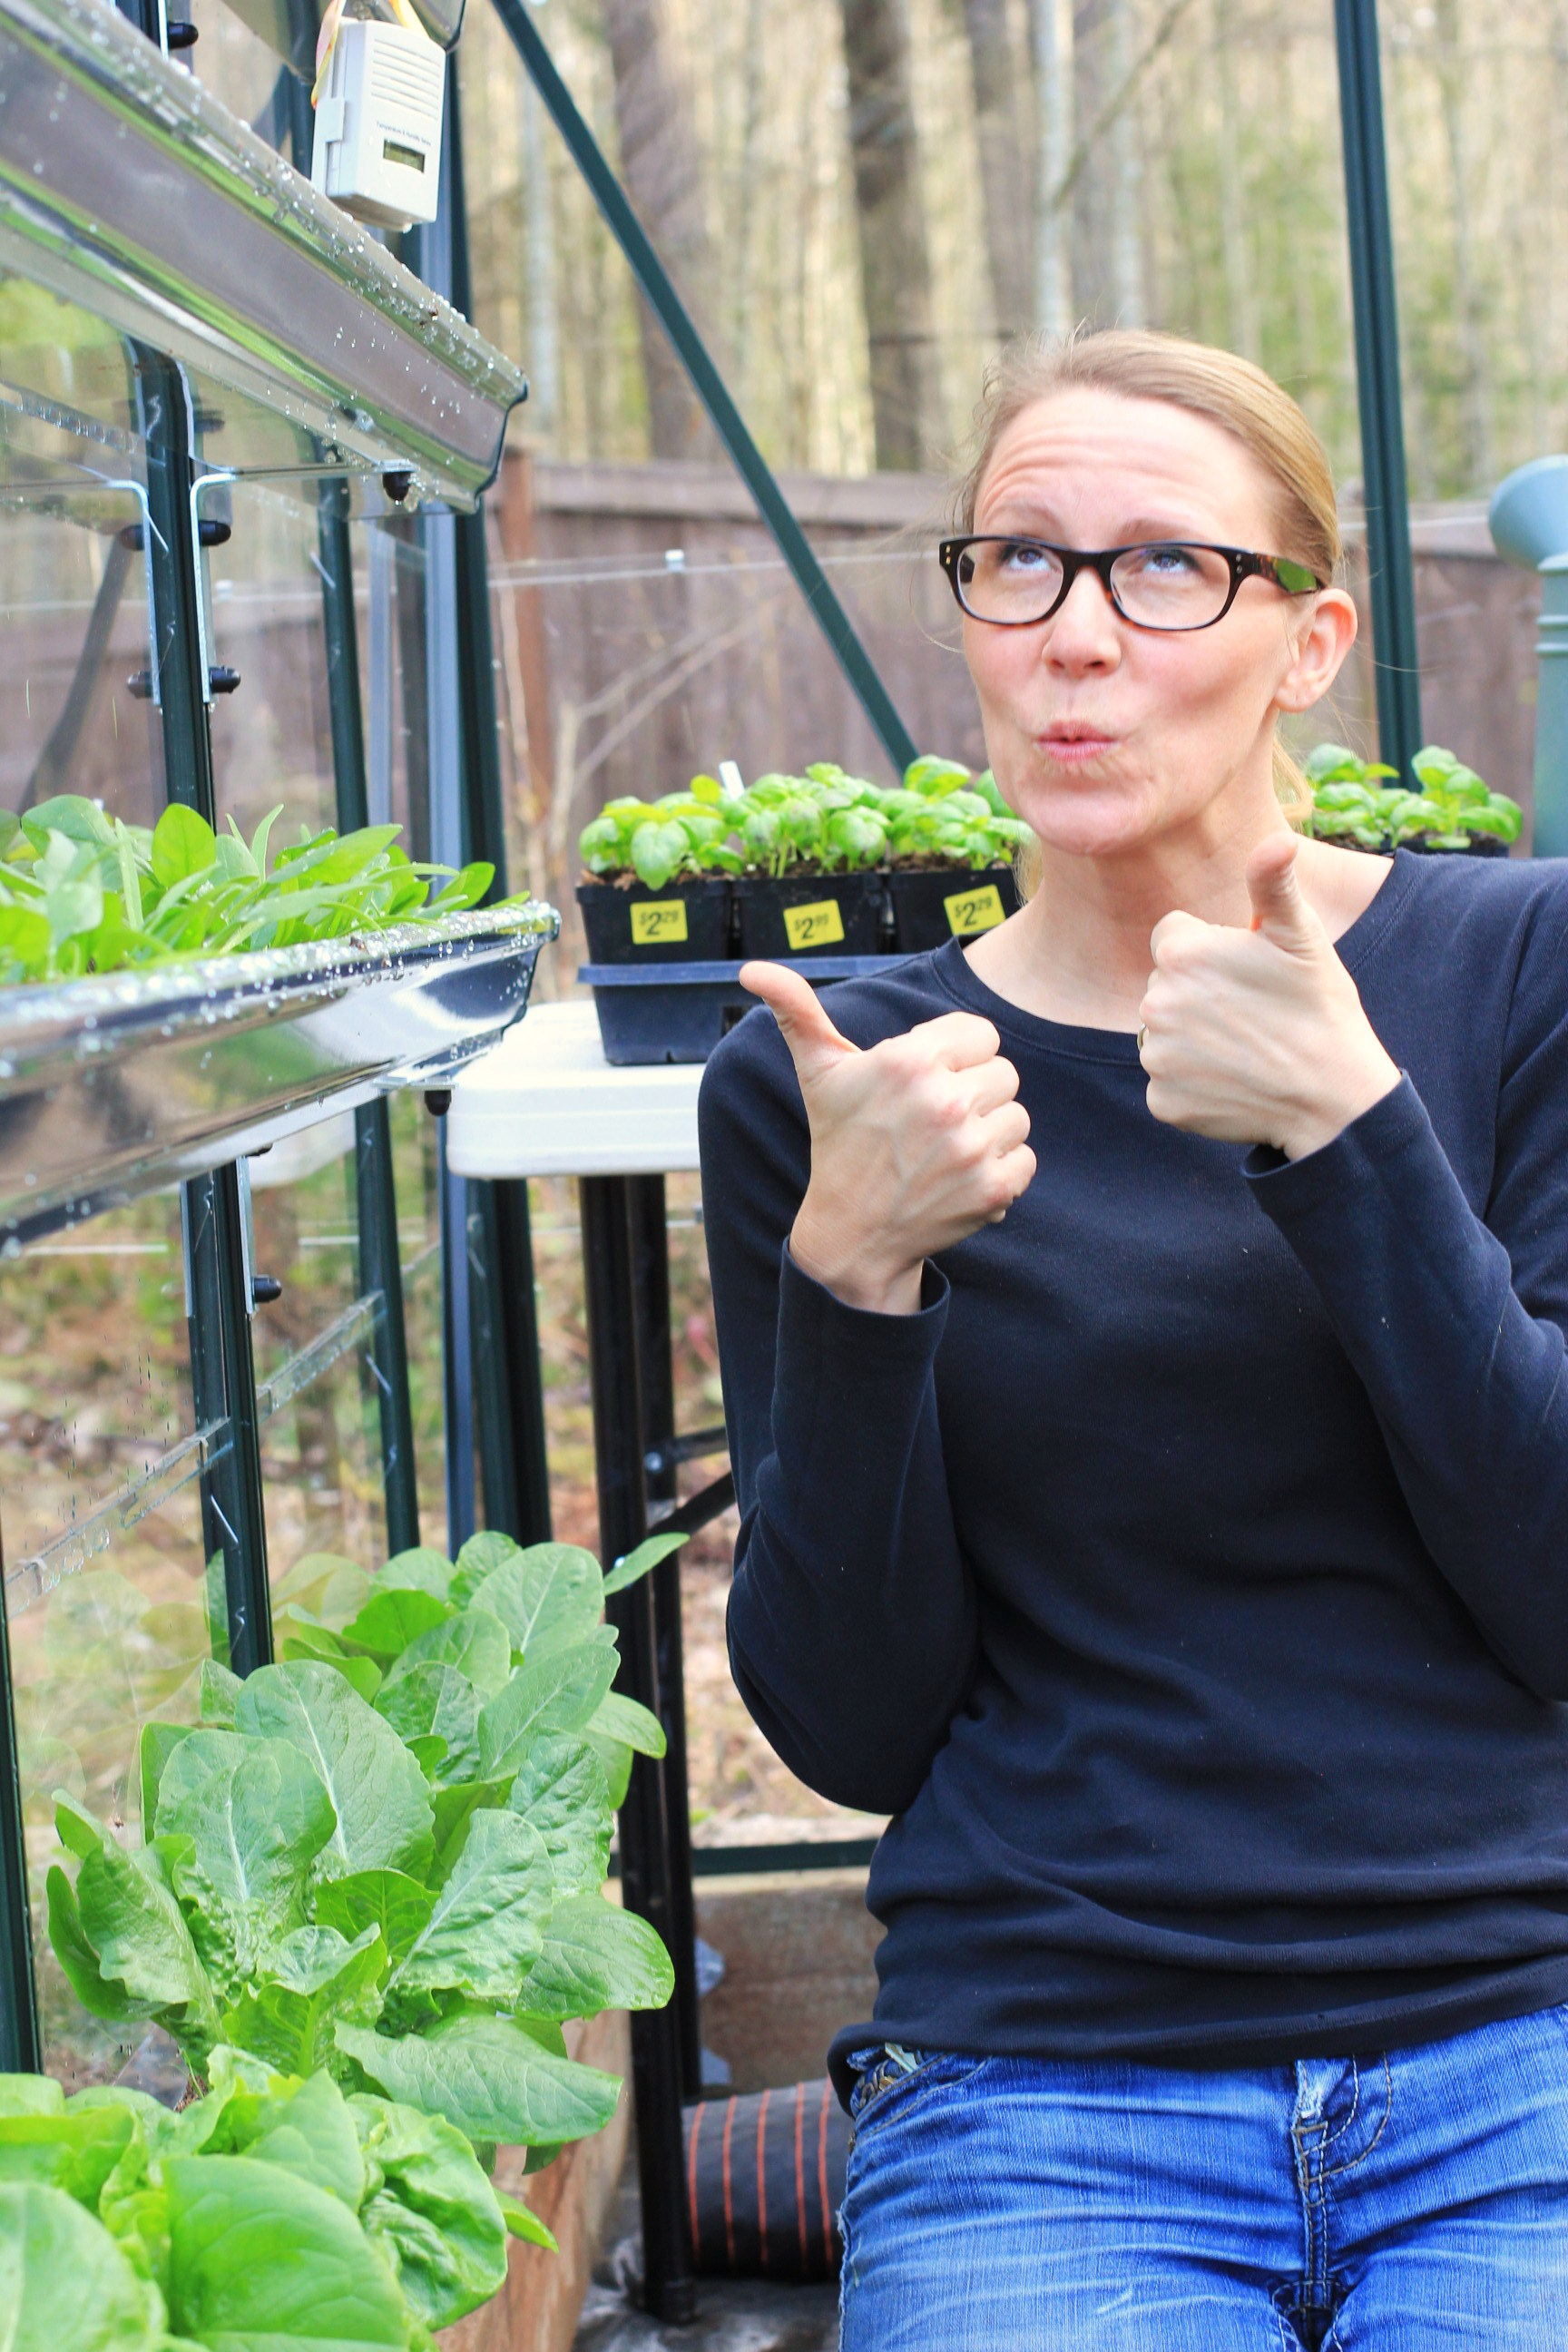 How to Grow Your Own Food In a Greenhouse